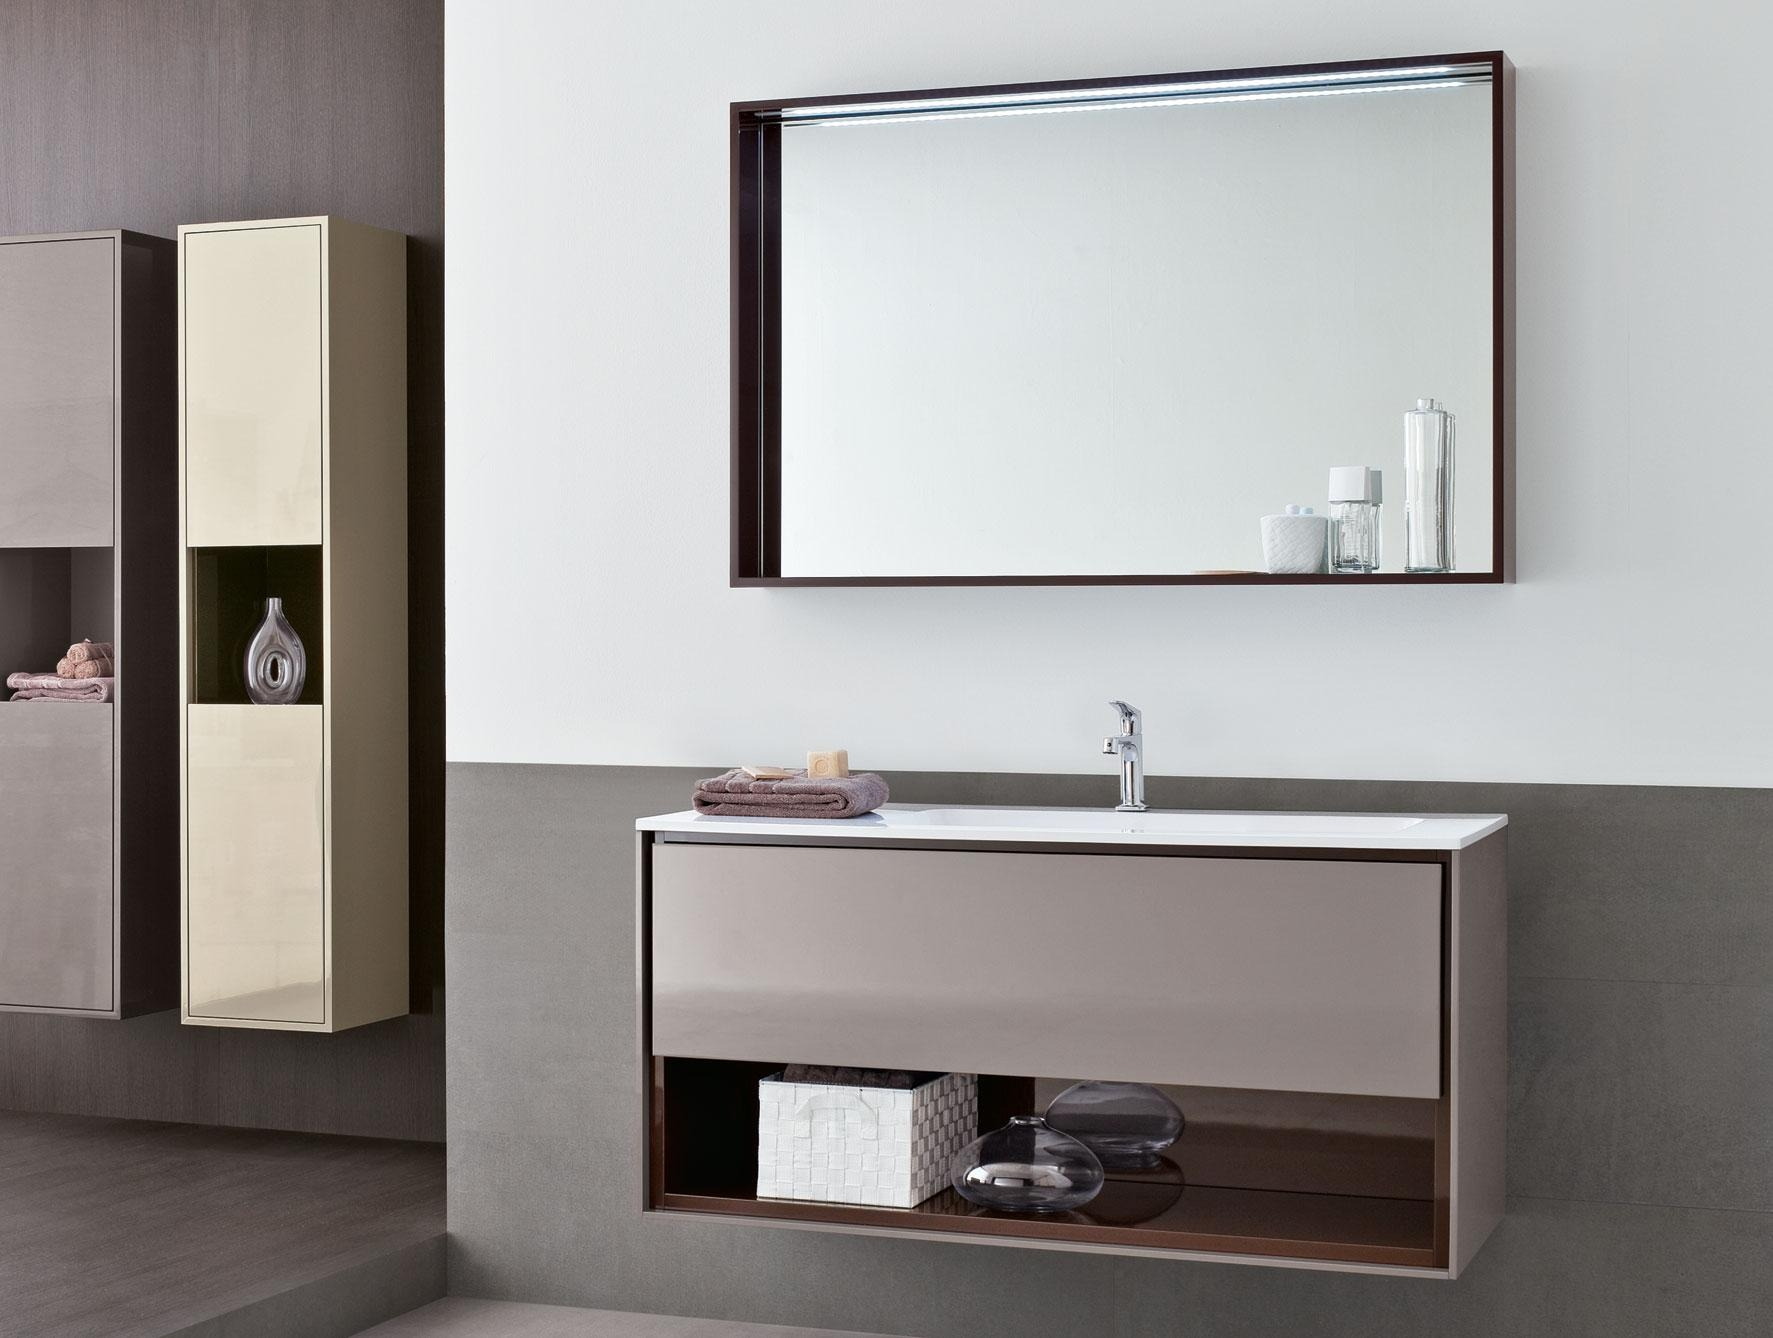 Frame Fr2 Modern Italian Designer Bathroom Furniture In Brown Lacquer In Modern Bath Mirrors (Image 15 of 20)